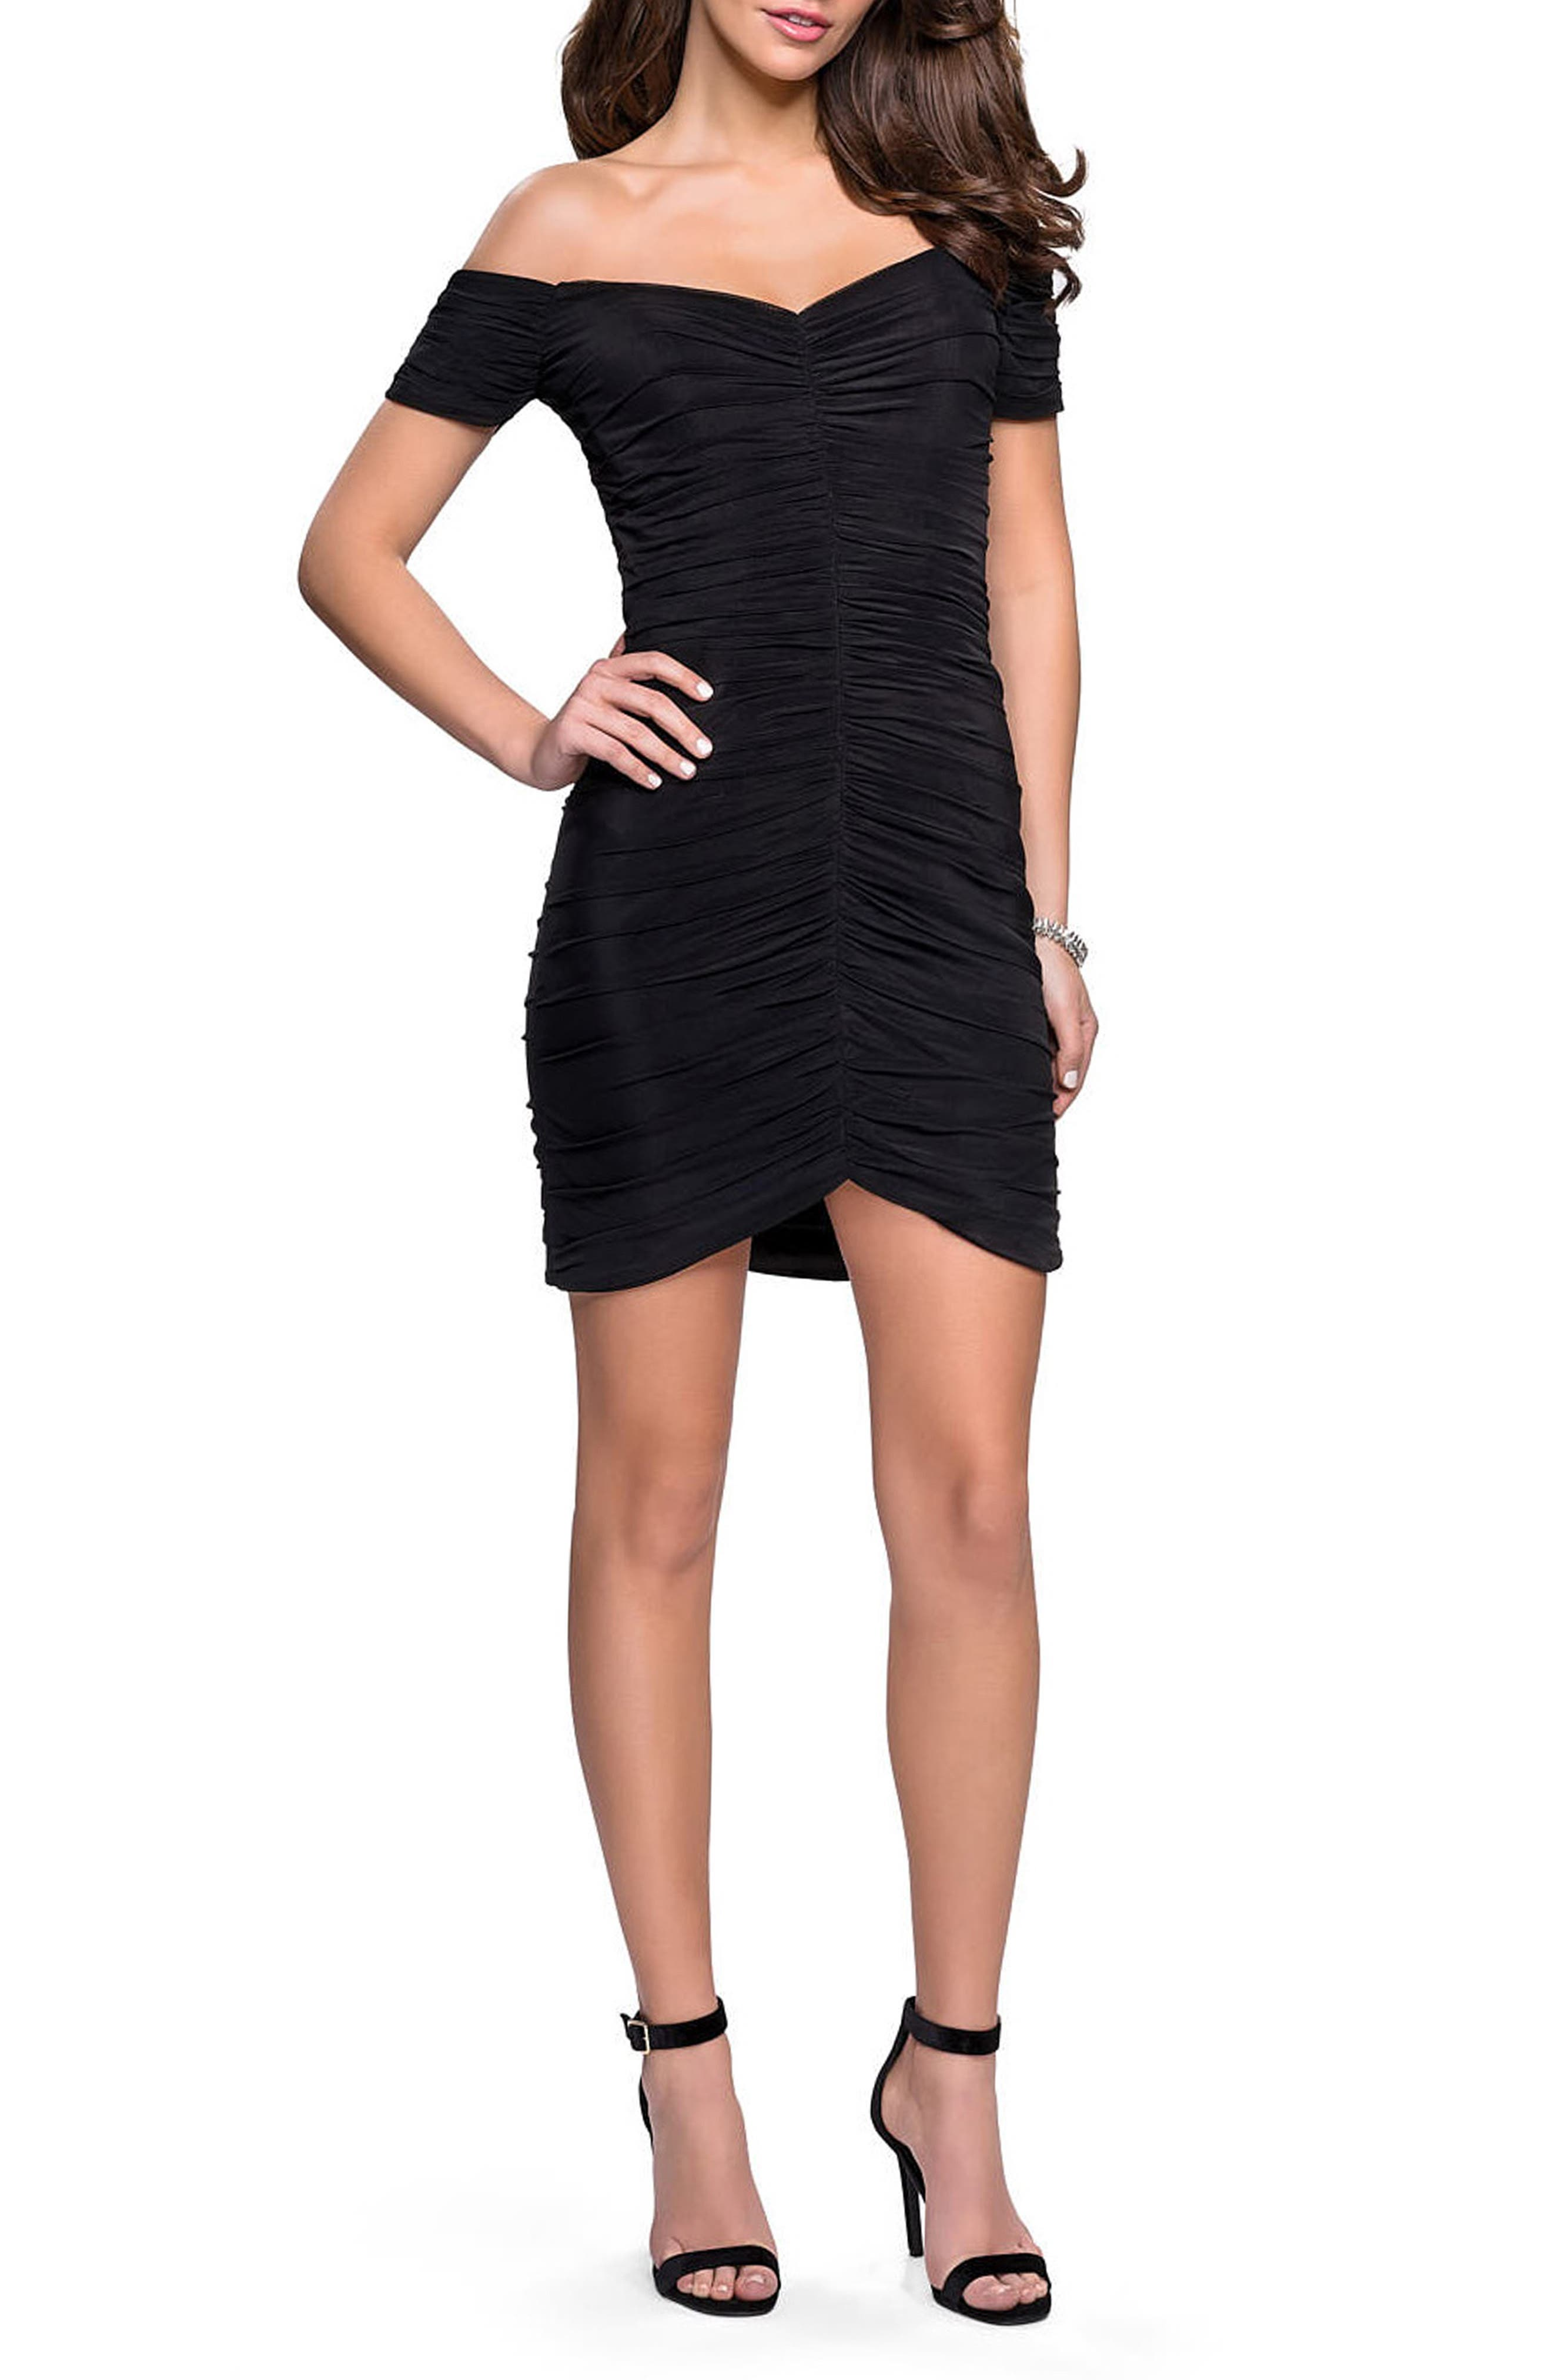 La Femme Off The Shoulder Ruched Party Dress, Black